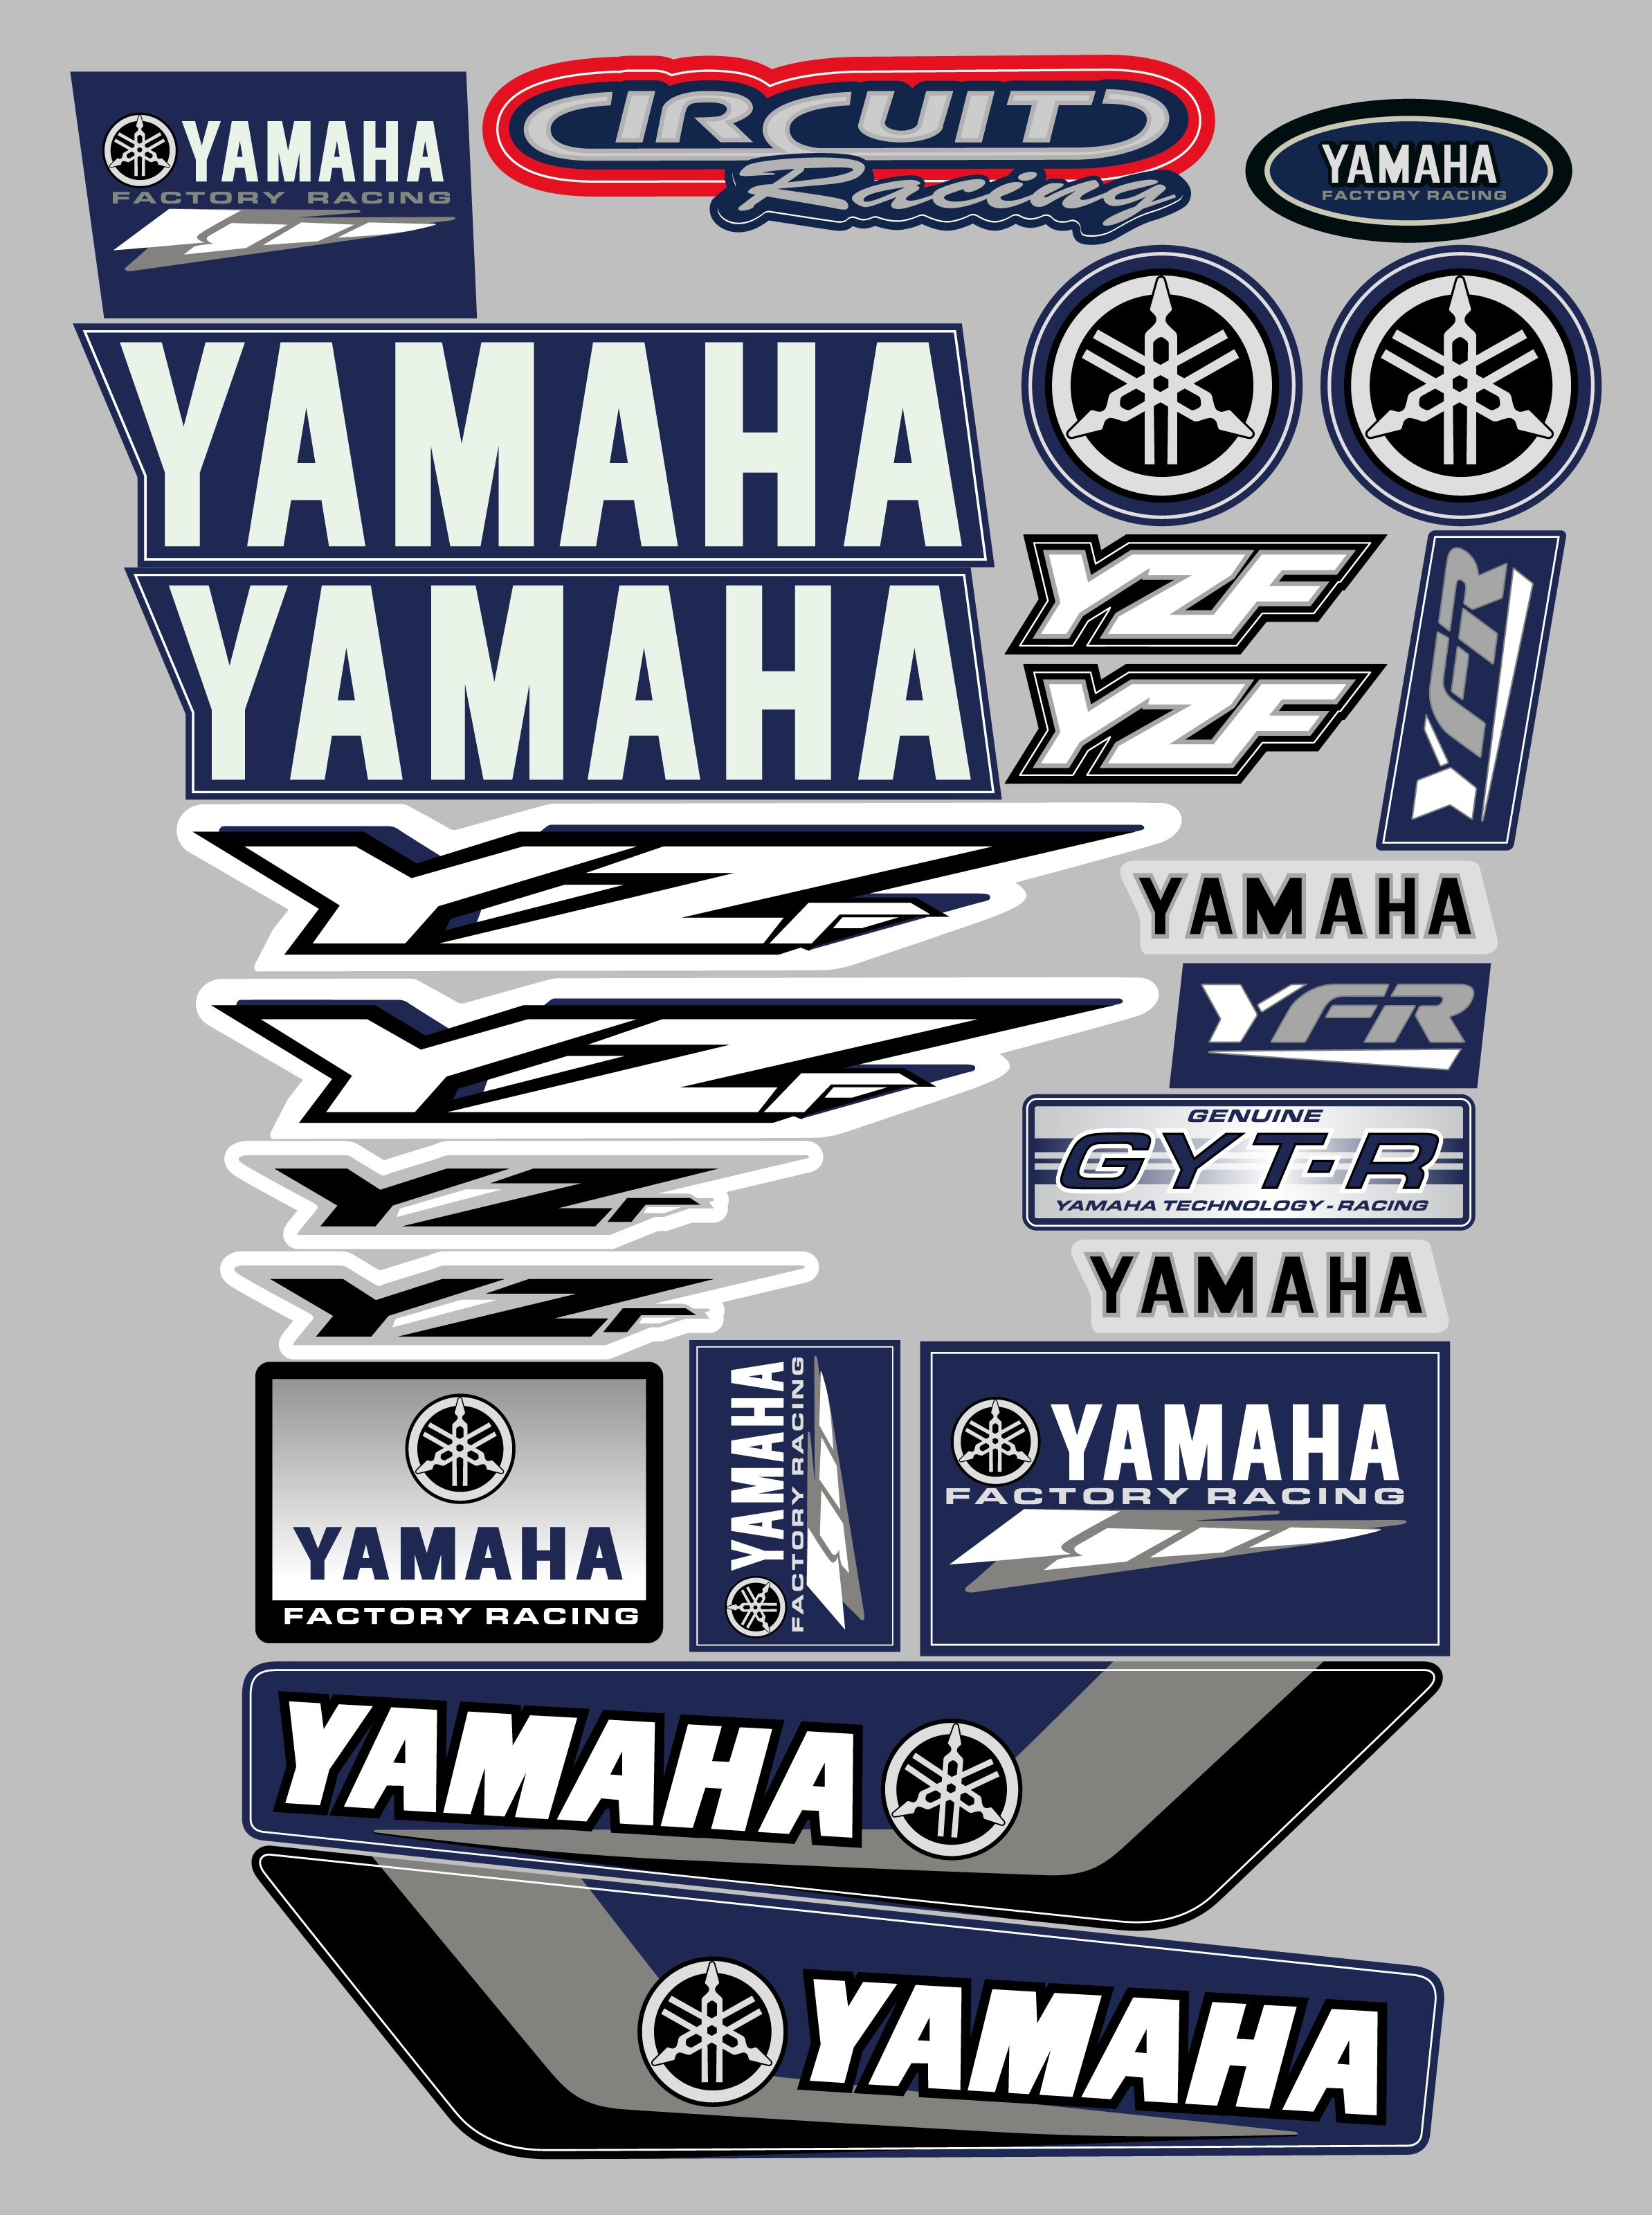 Yamaha yzf decal sticker kit